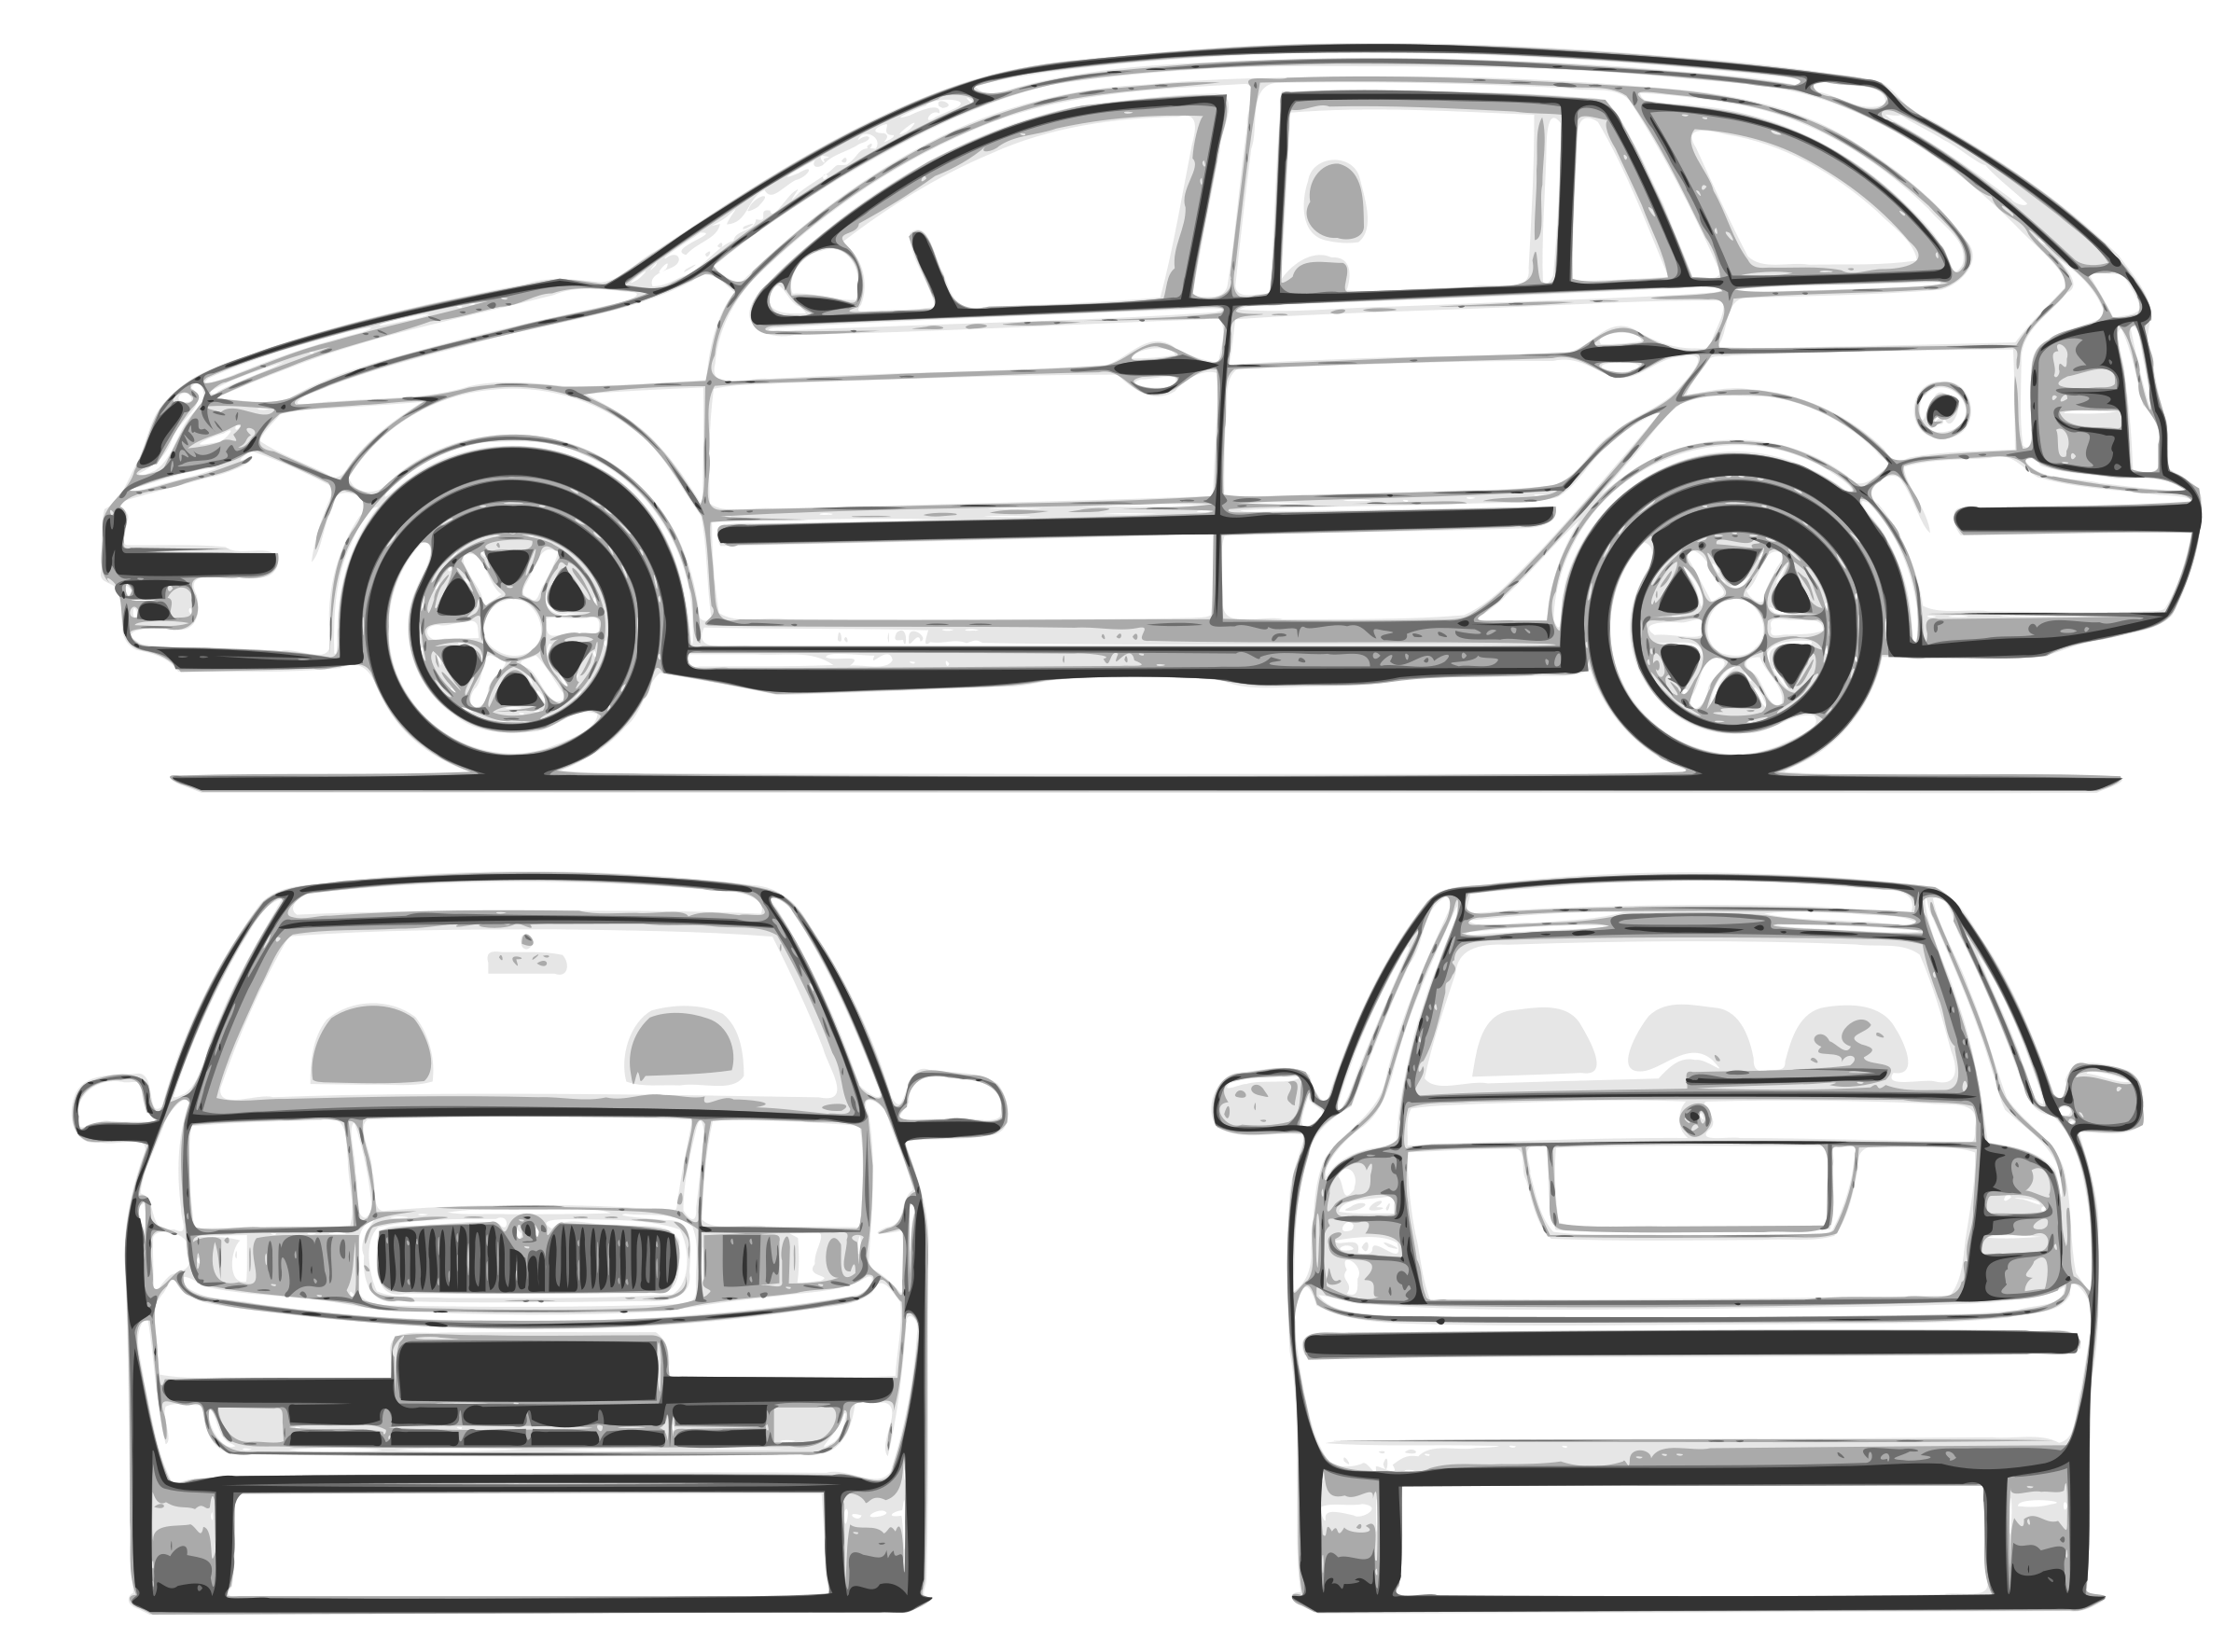 Supernatural car clipart graphic library download Clipart - fabia - all views graphic library download